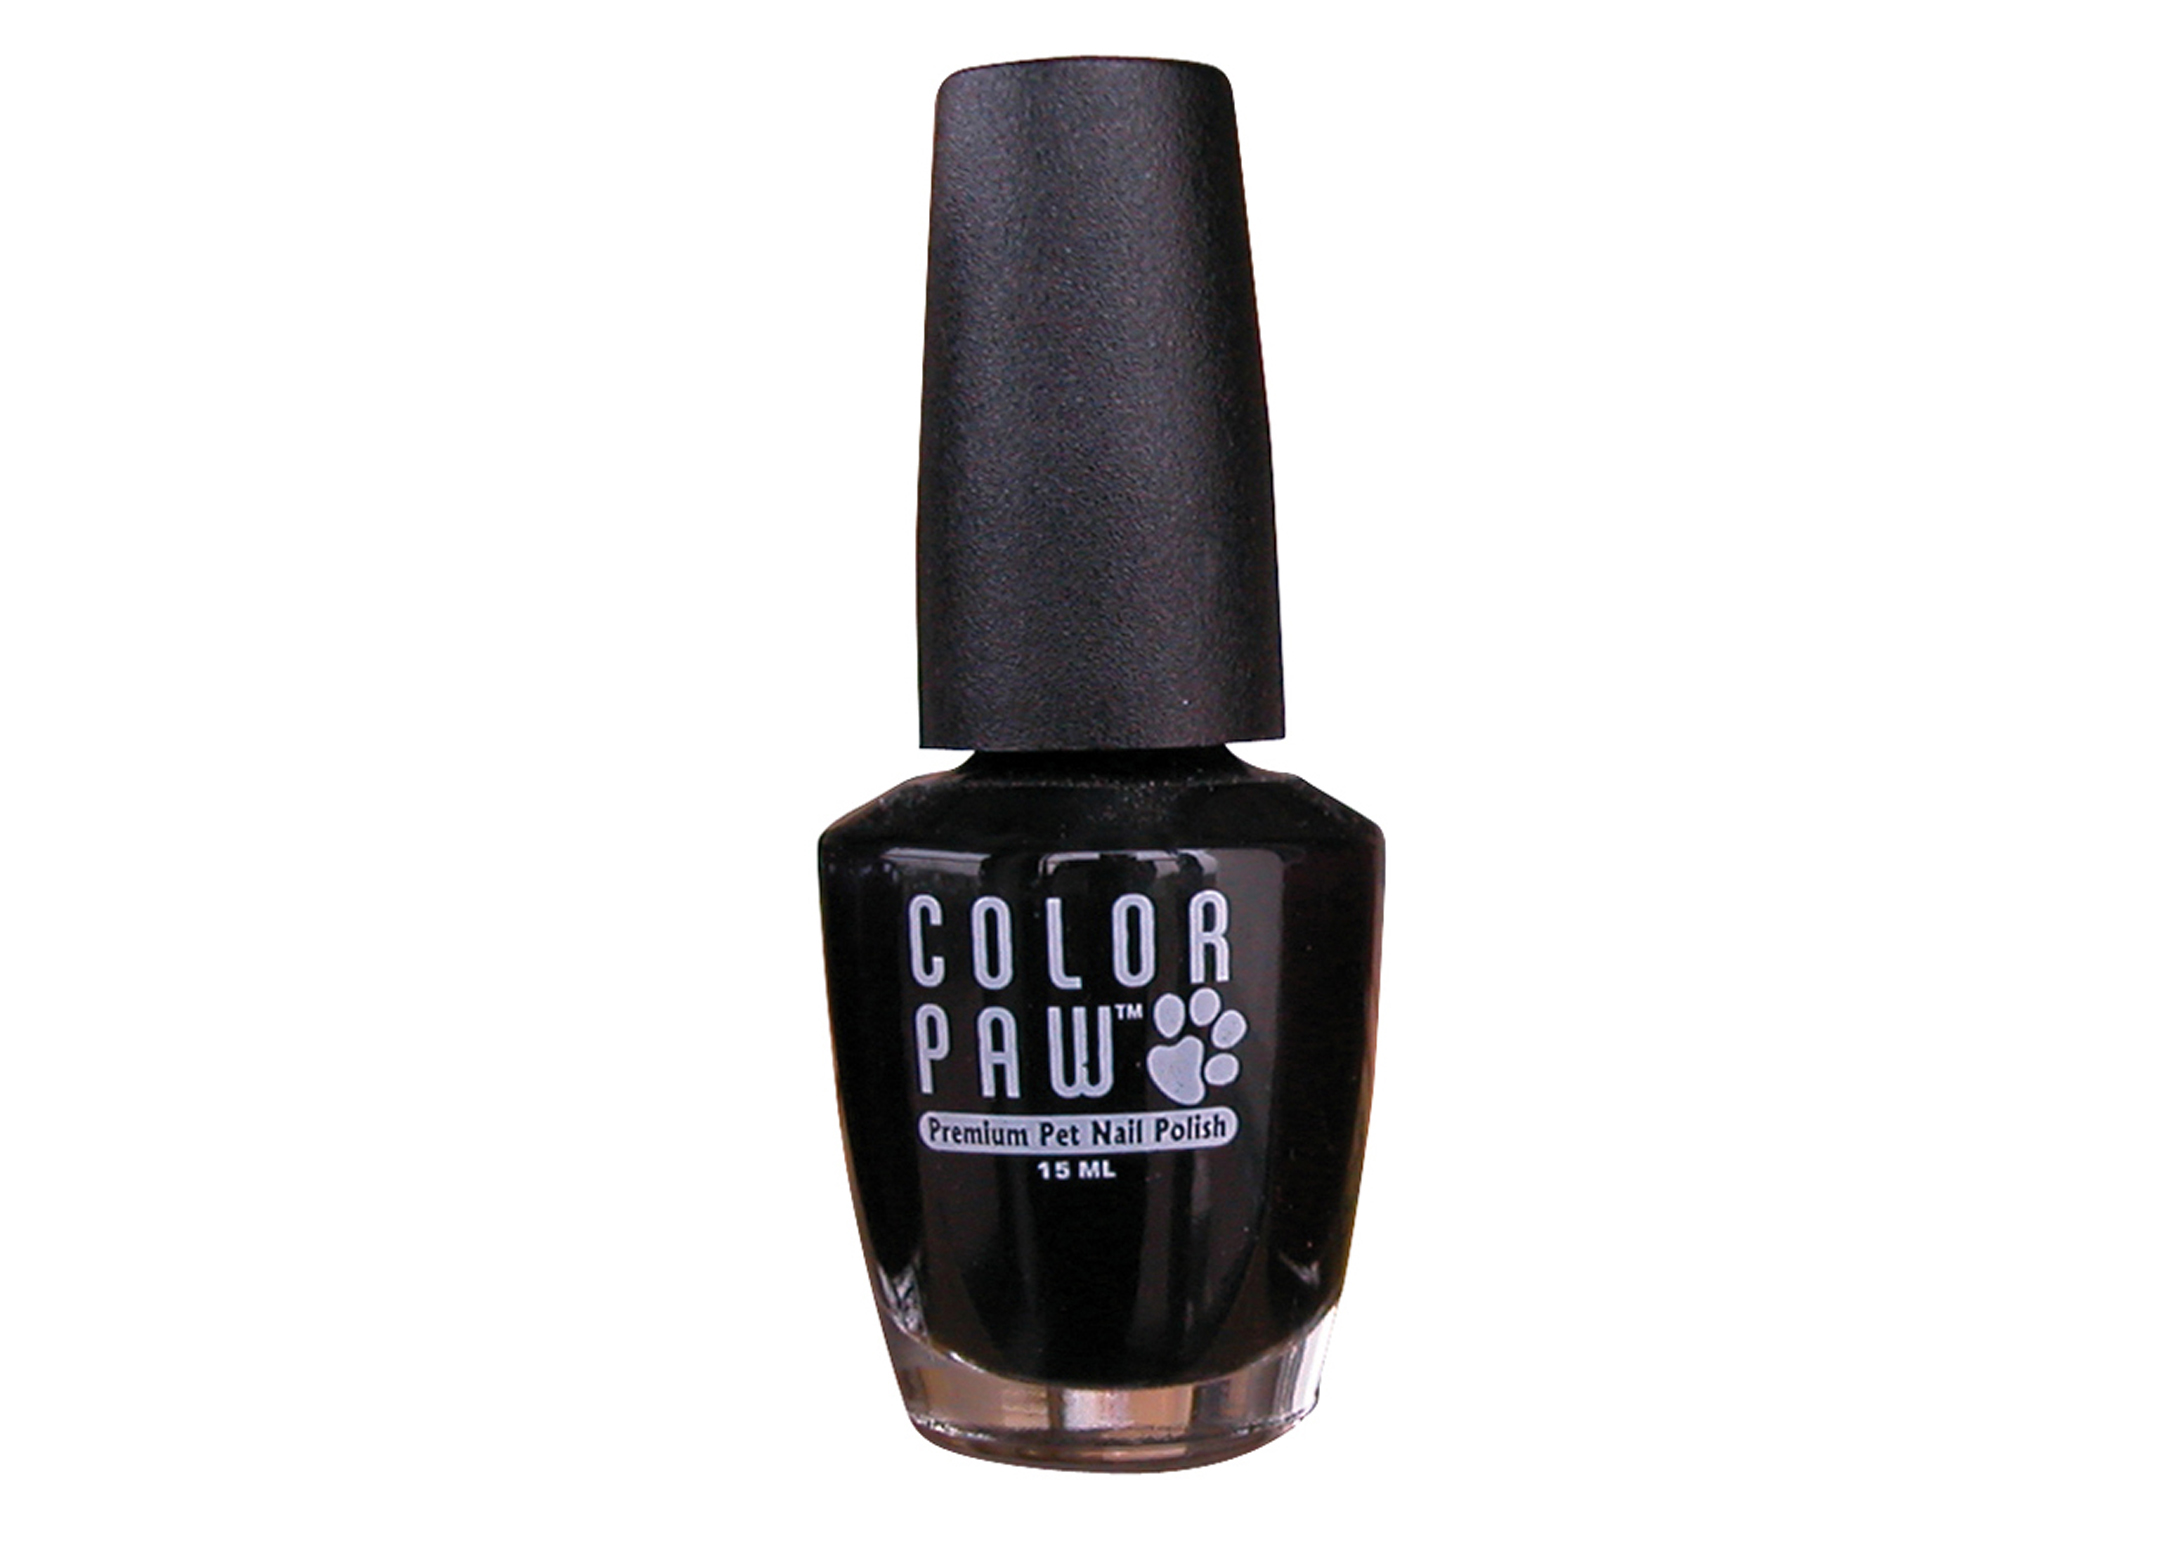 Top Performance Vernis à ongles Noir 15 ml Vernis à Ongles